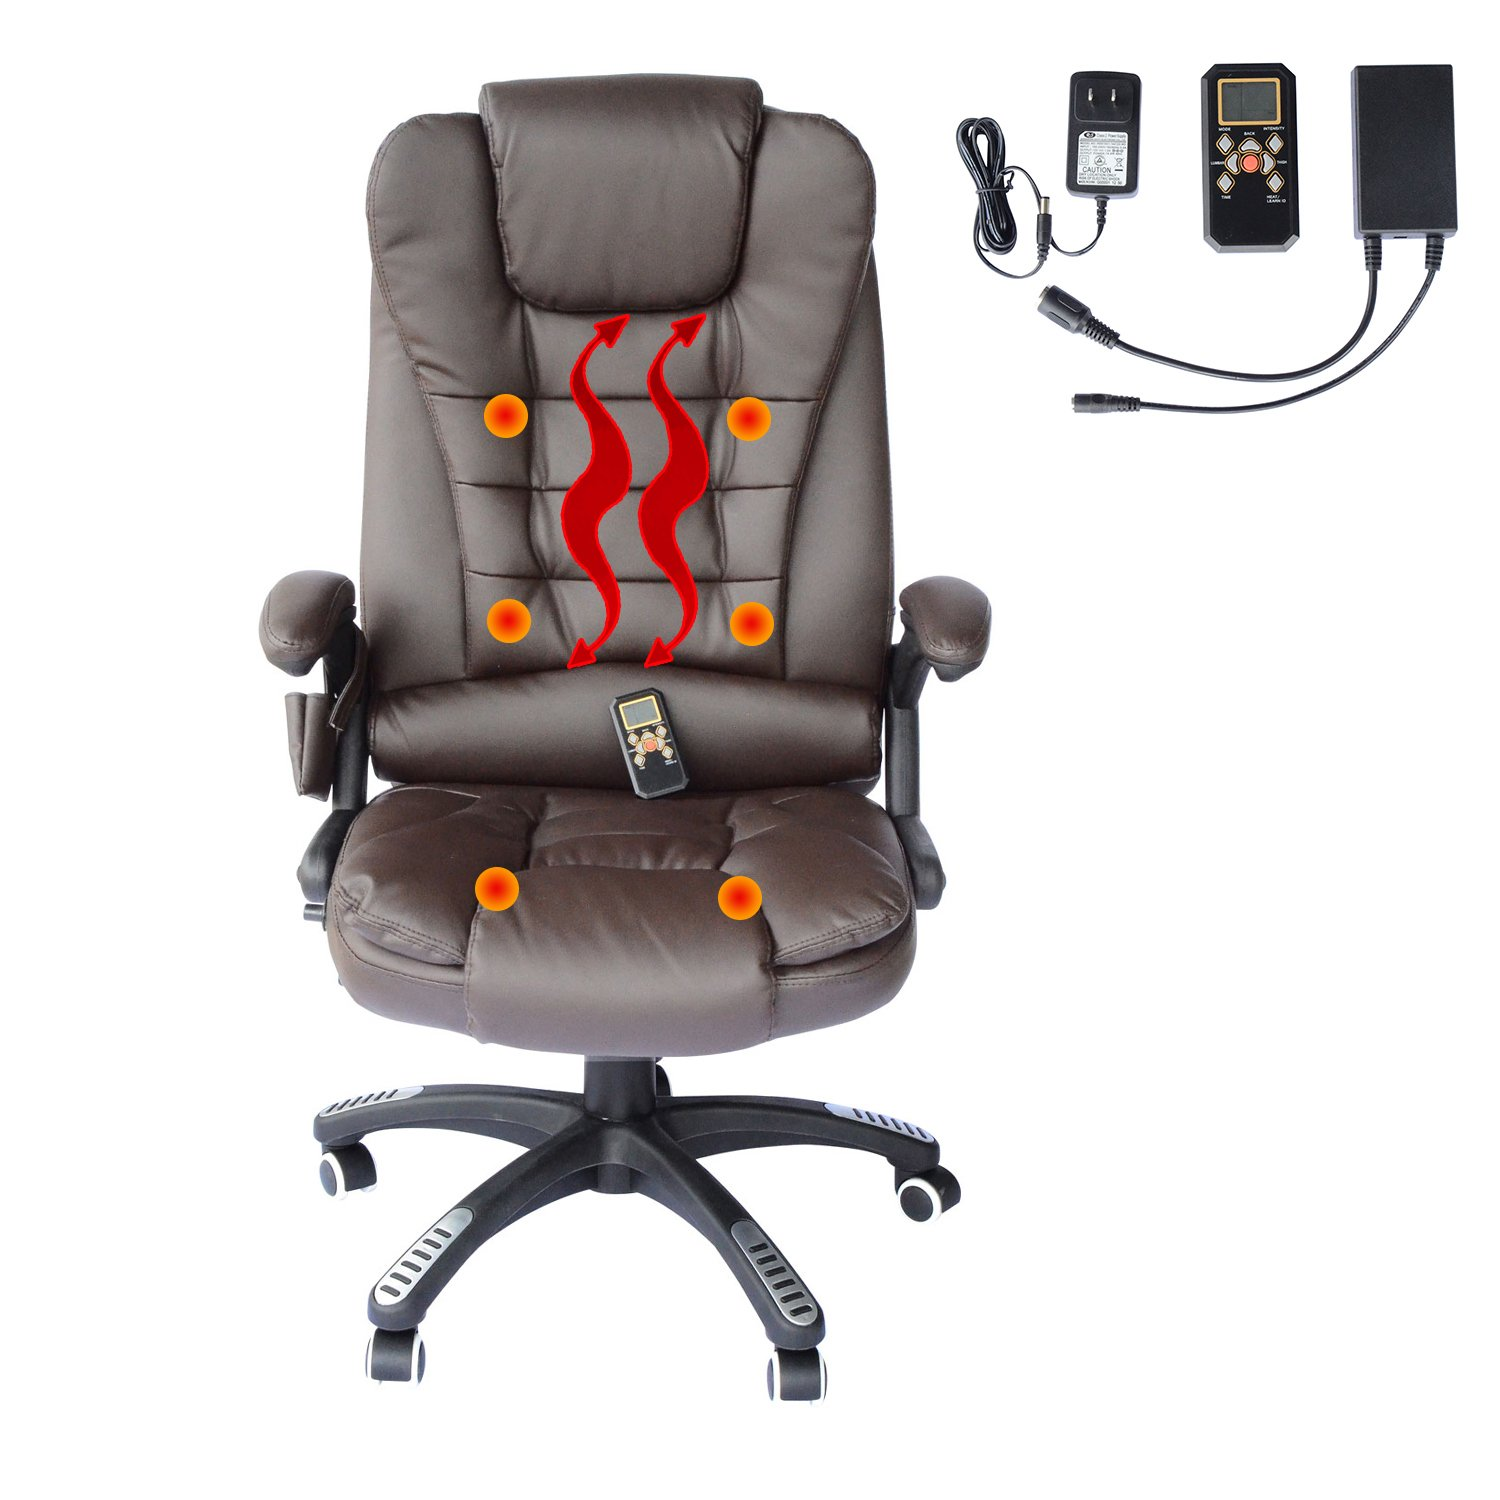 strategist the chair home office article ask best strat chairs